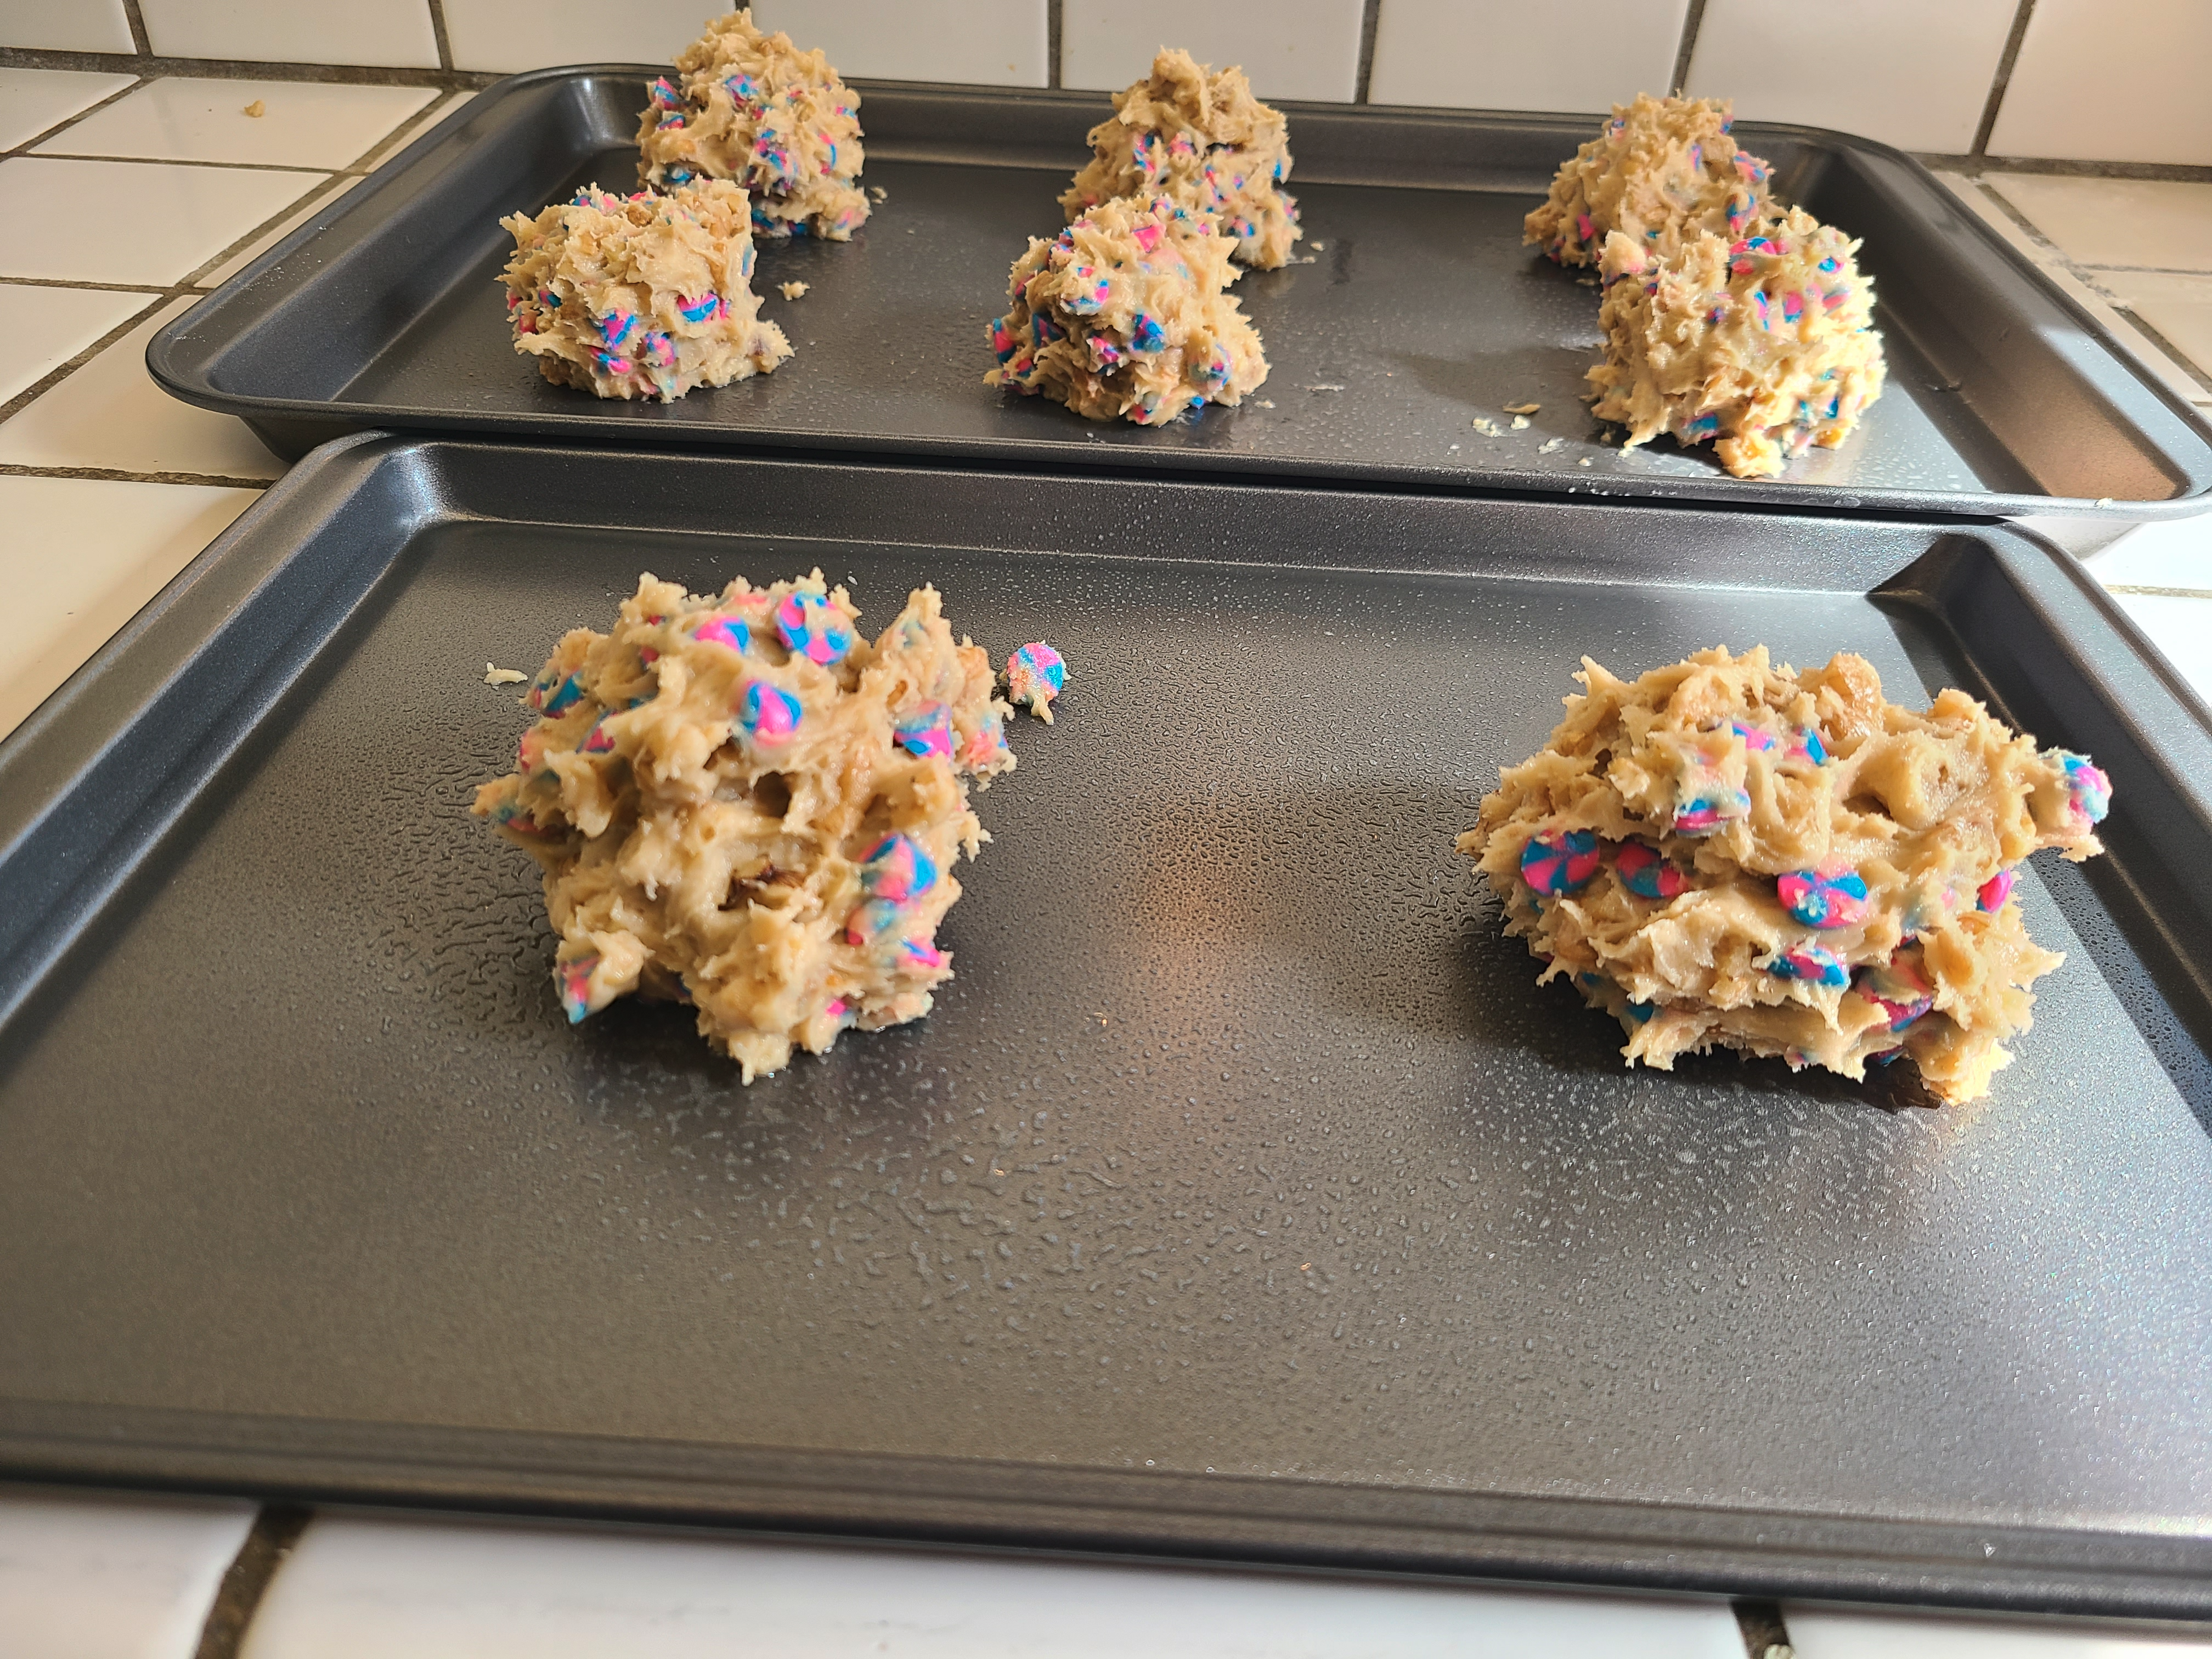 unbaked cookies on a sheet